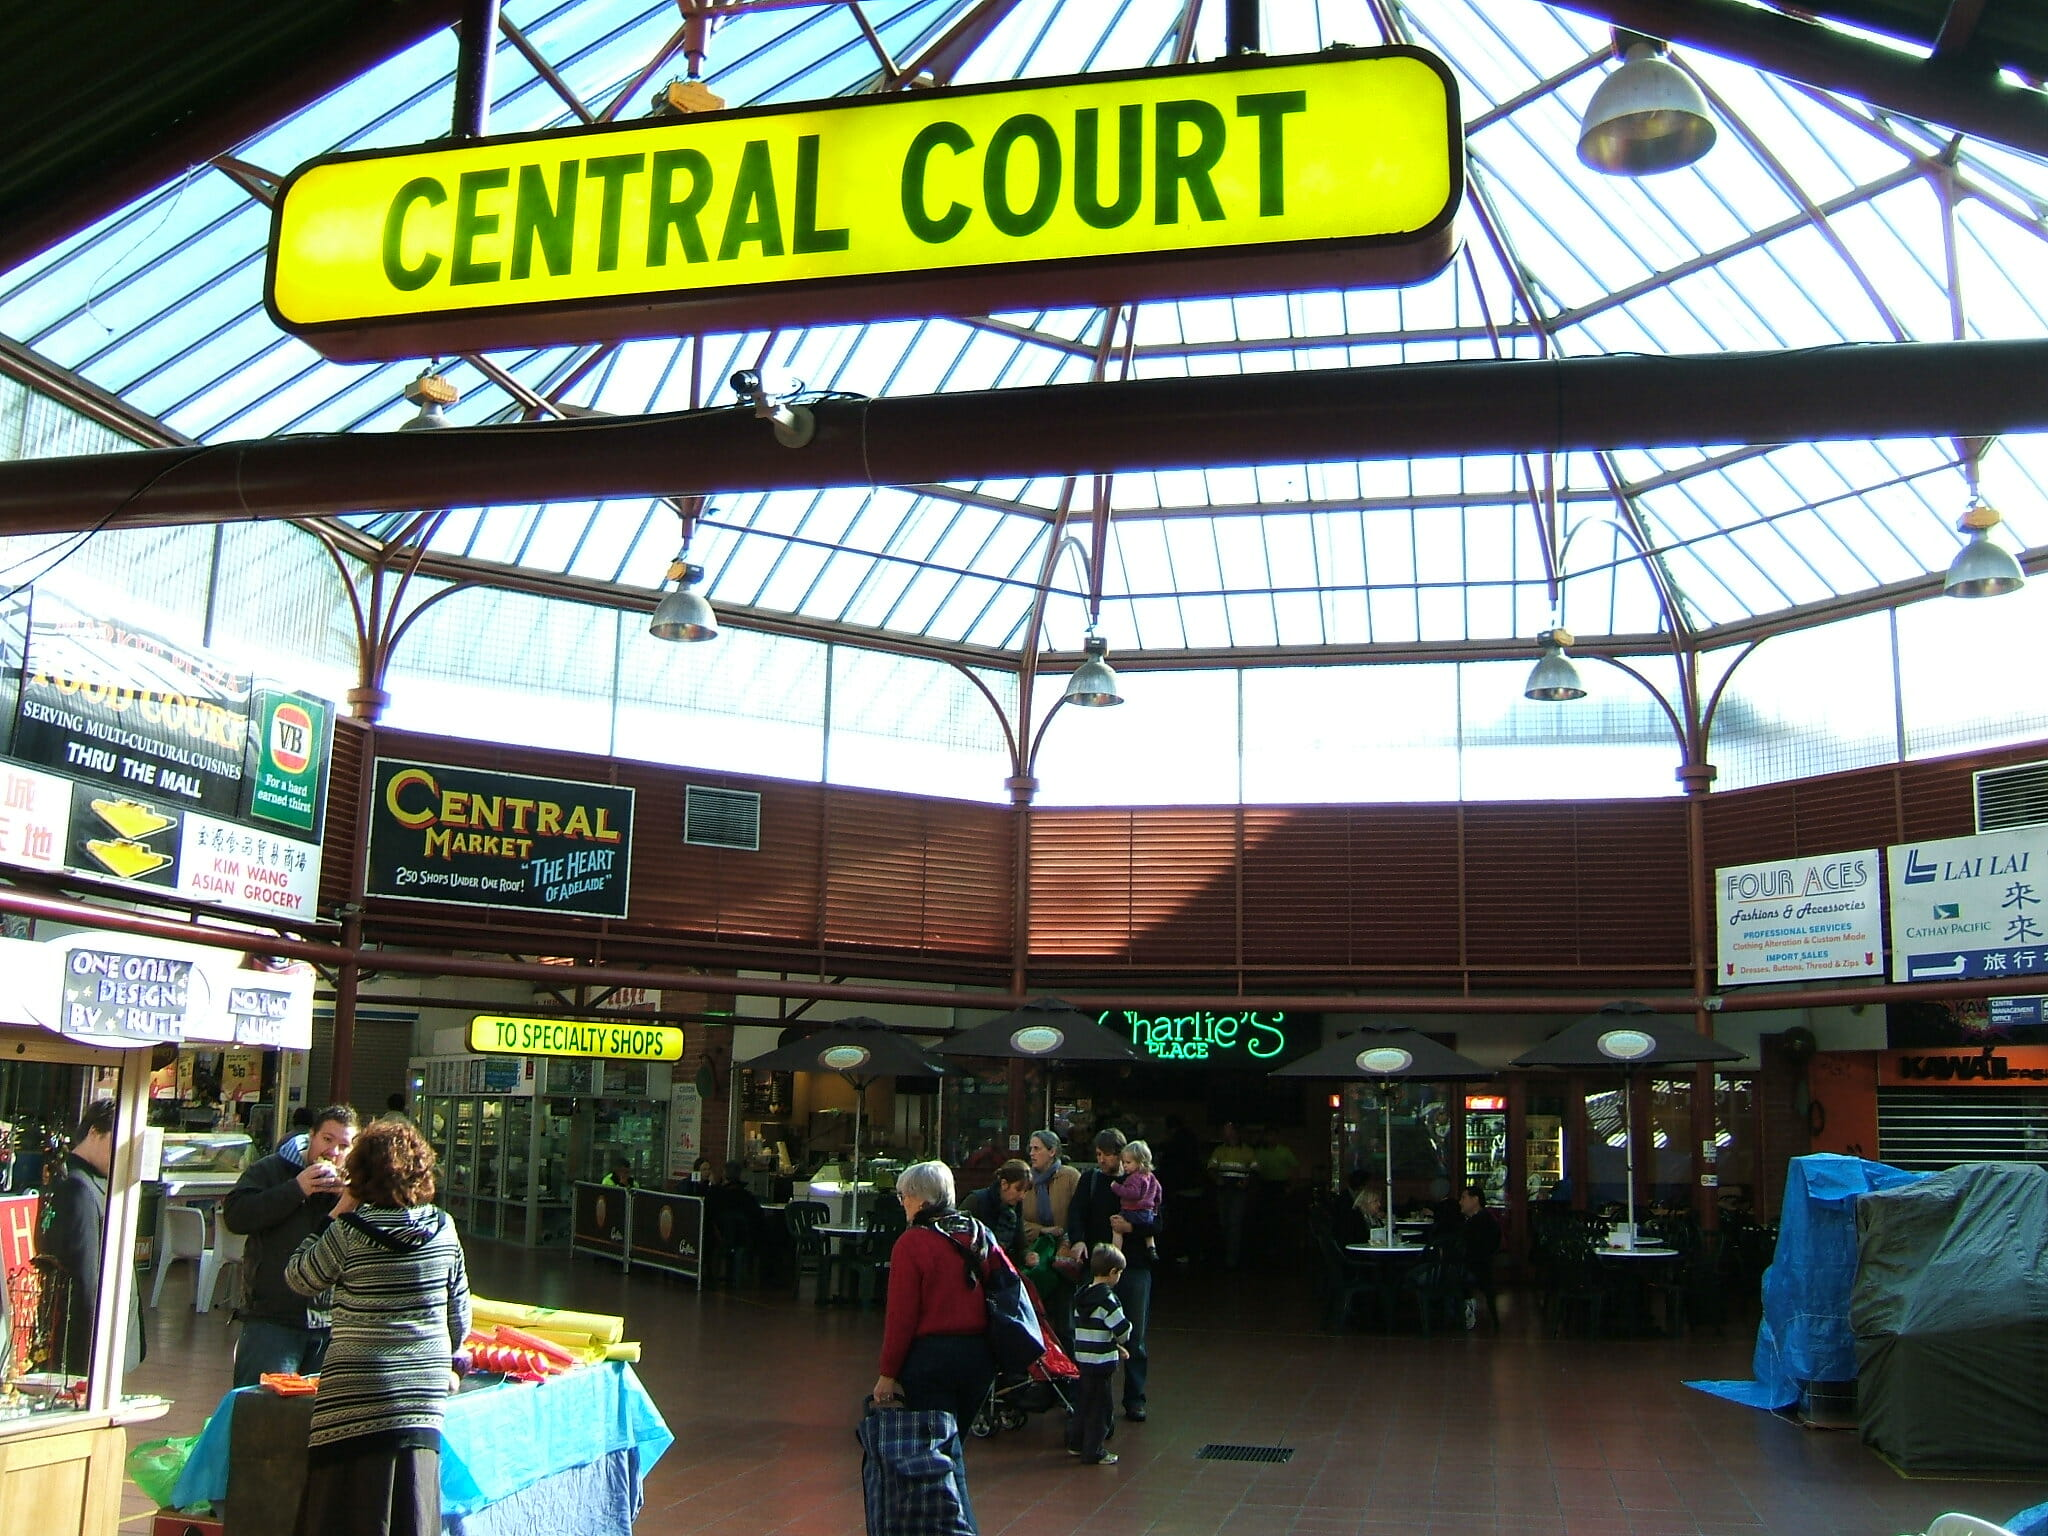 Central Court at Adelaide Central Market which, along with great stalls, has Free WiFi